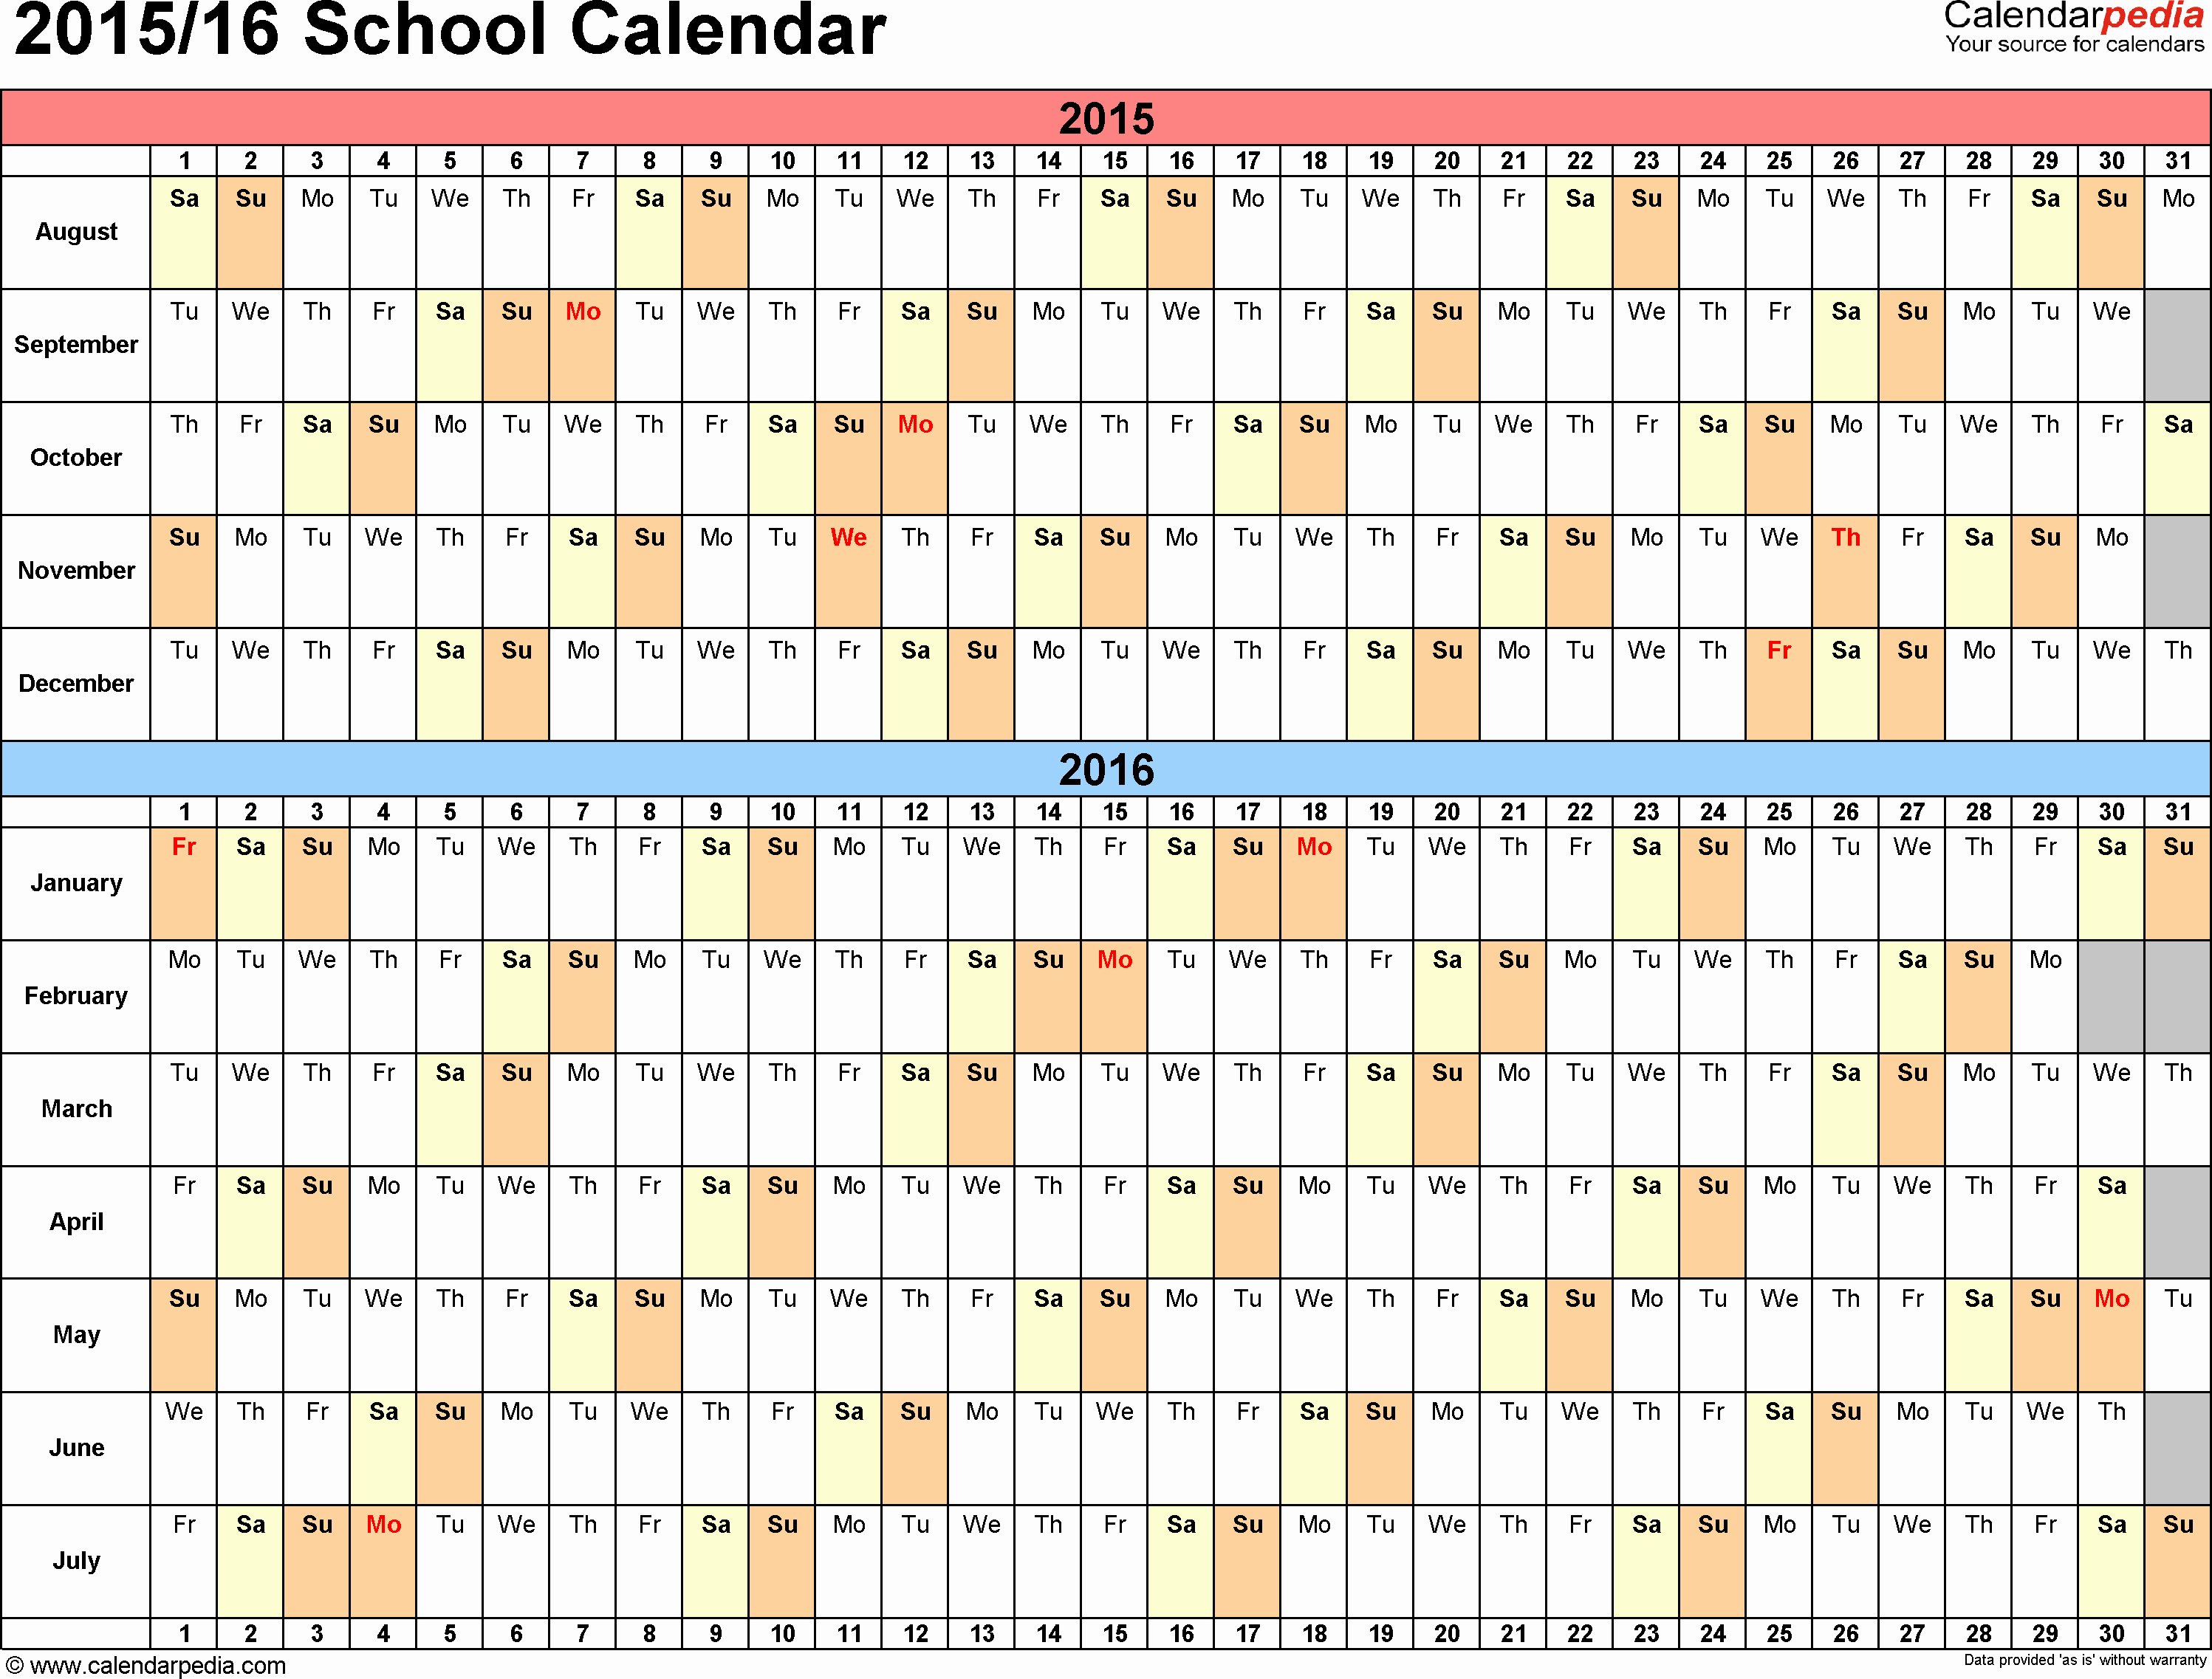 Calendar 2016-17 Template Lovely School Calendars 2015 2016 as Free Printable Excel Templates